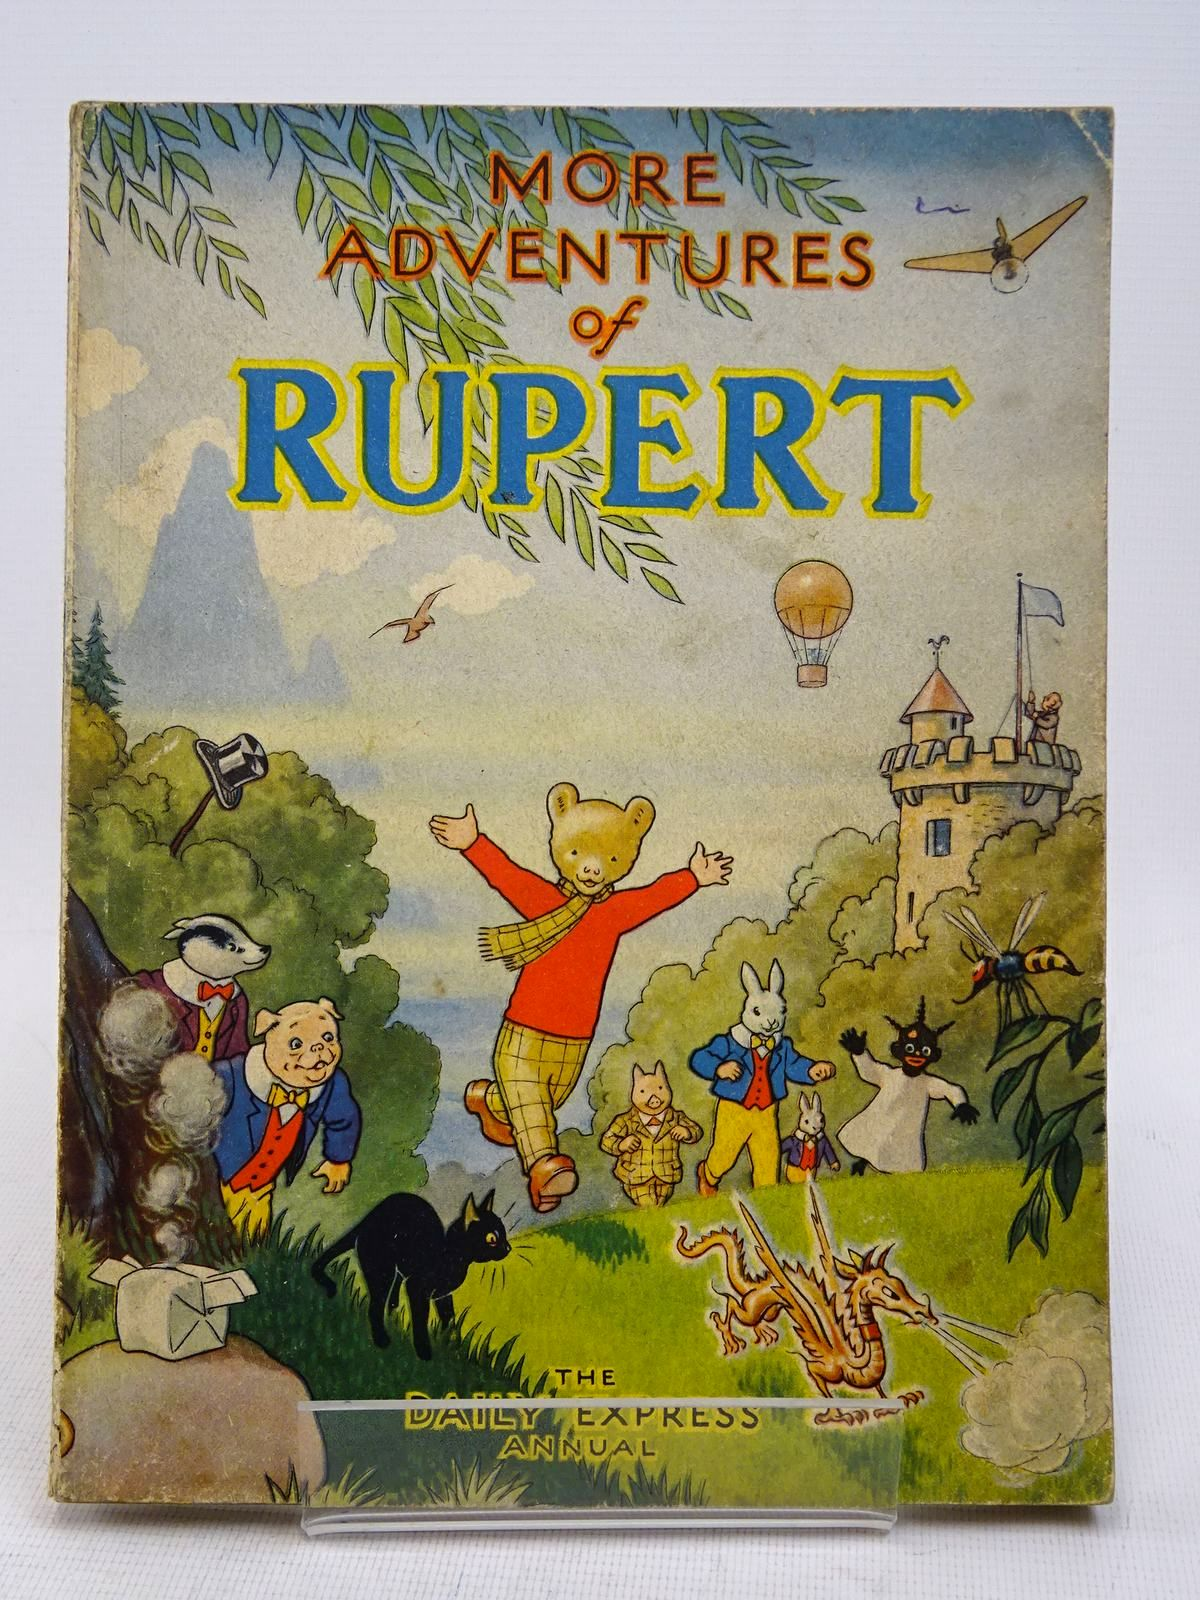 Photo of RUPERT ANNUAL 1947 - MORE ADVENTURES OF RUPERT written by Bestall, Alfred illustrated by Bestall, Alfred published by Daily Express (STOCK CODE: 1817302)  for sale by Stella & Rose's Books